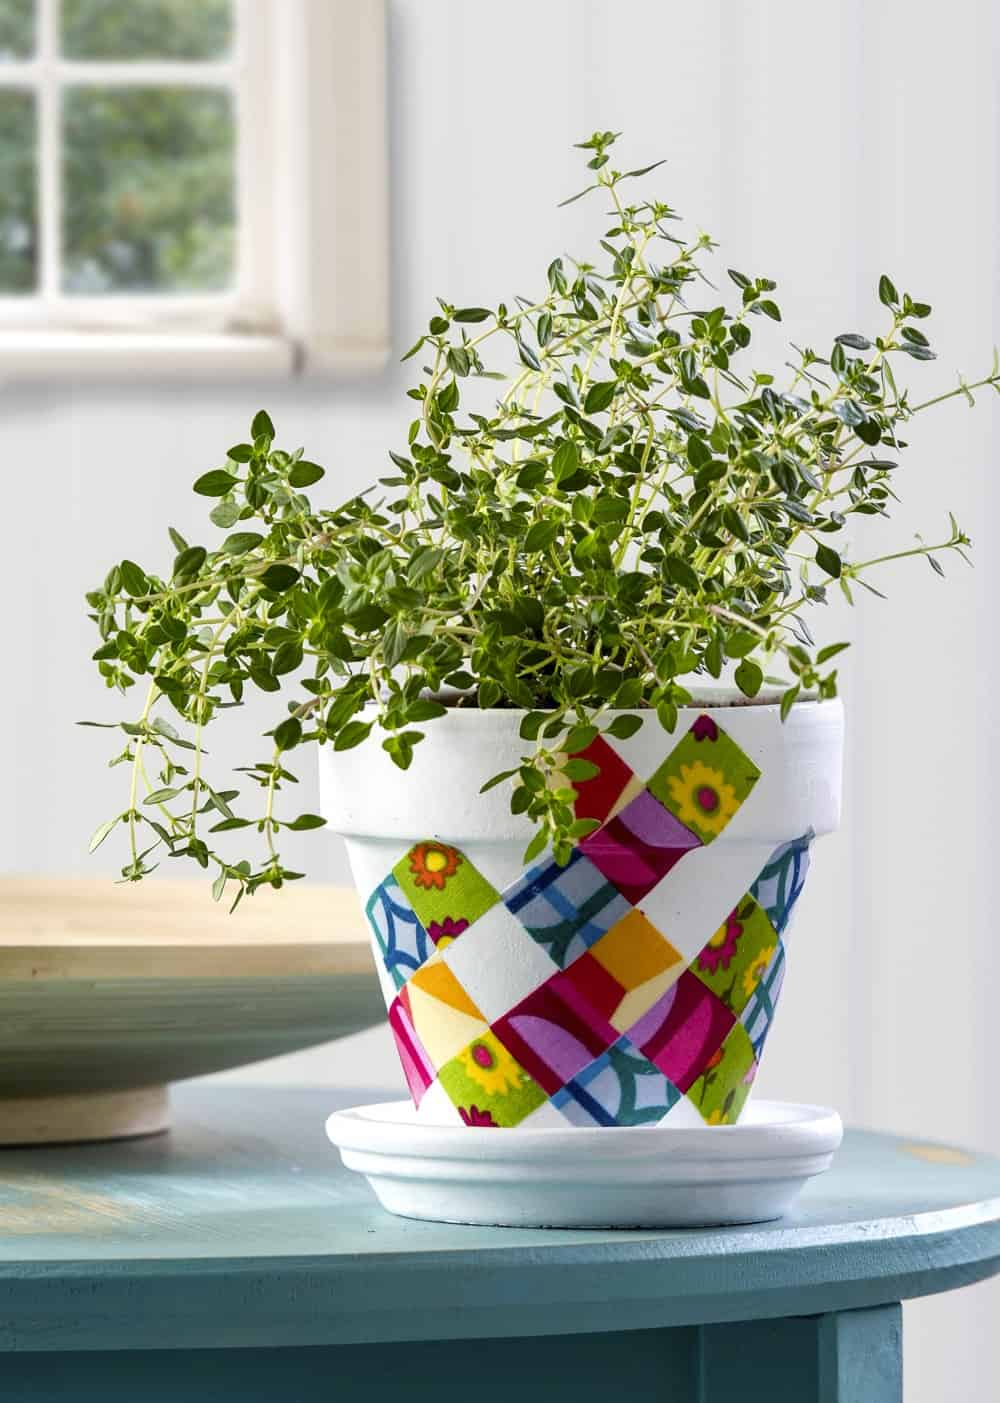 Adding fabric to a clay pot with Mod Podge